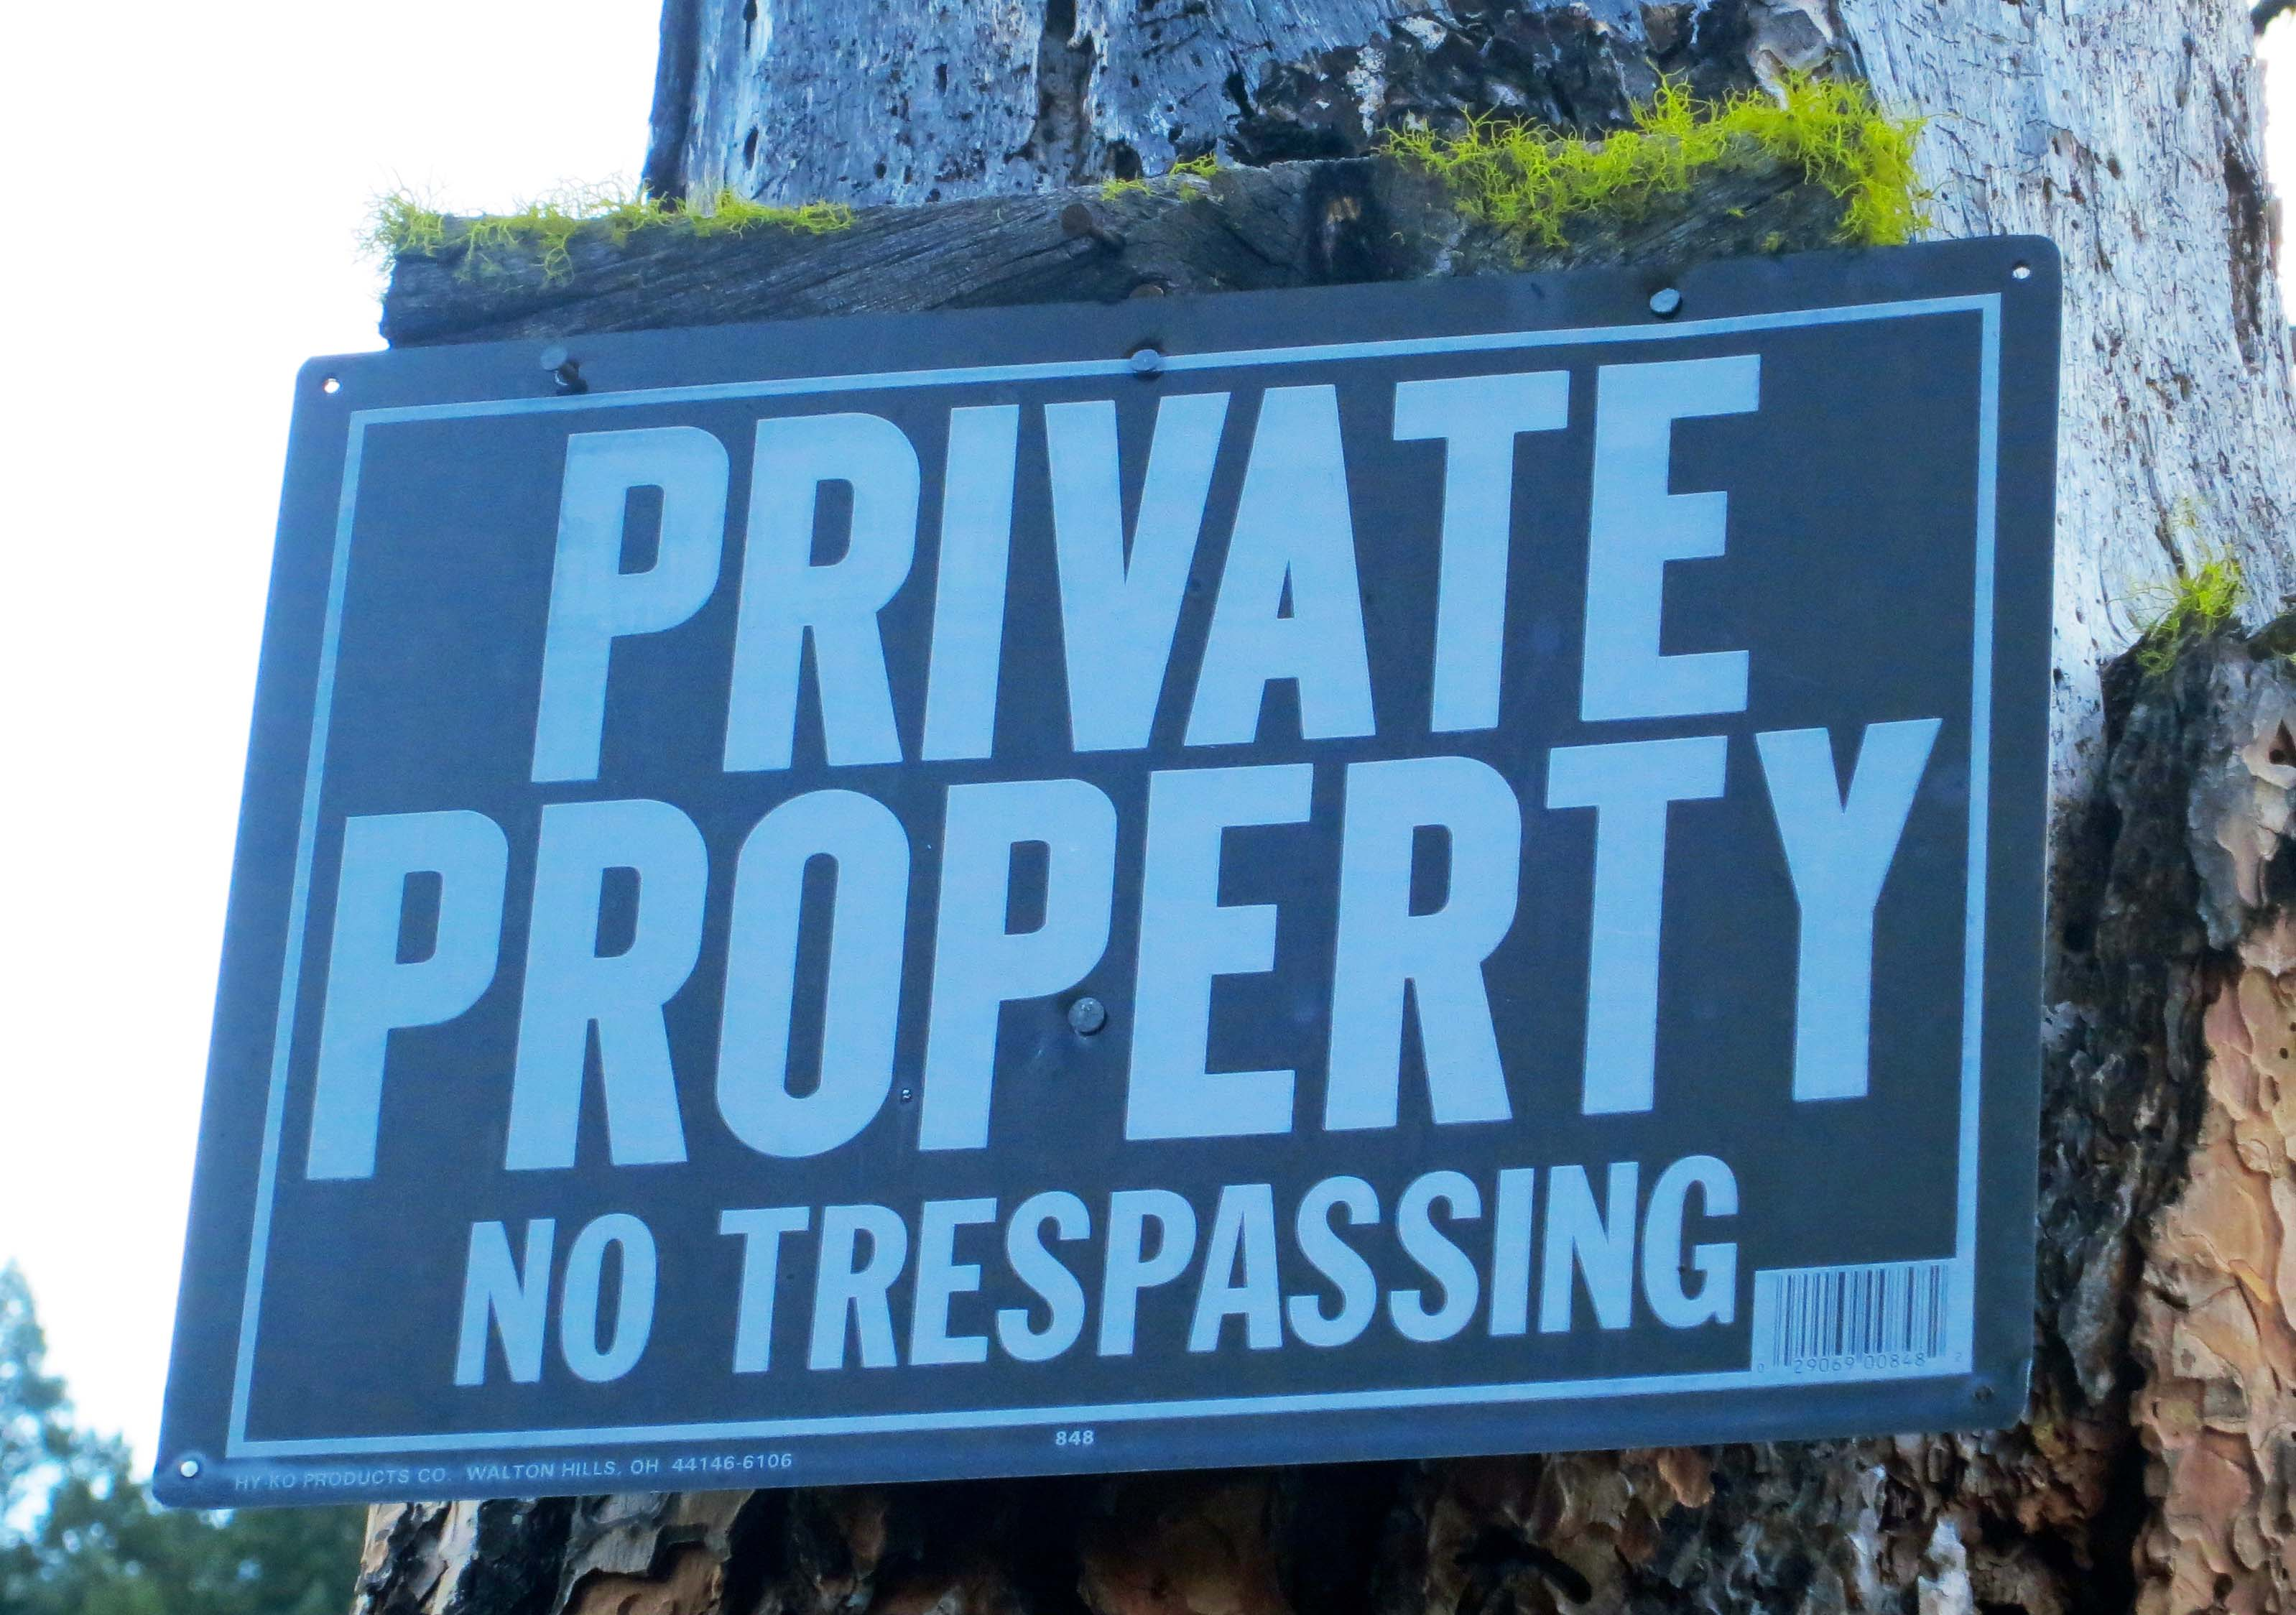 There is this sign... but I am sure they can't mean me. Plus I haven't met the owner to ask for permission in my three years of living here.